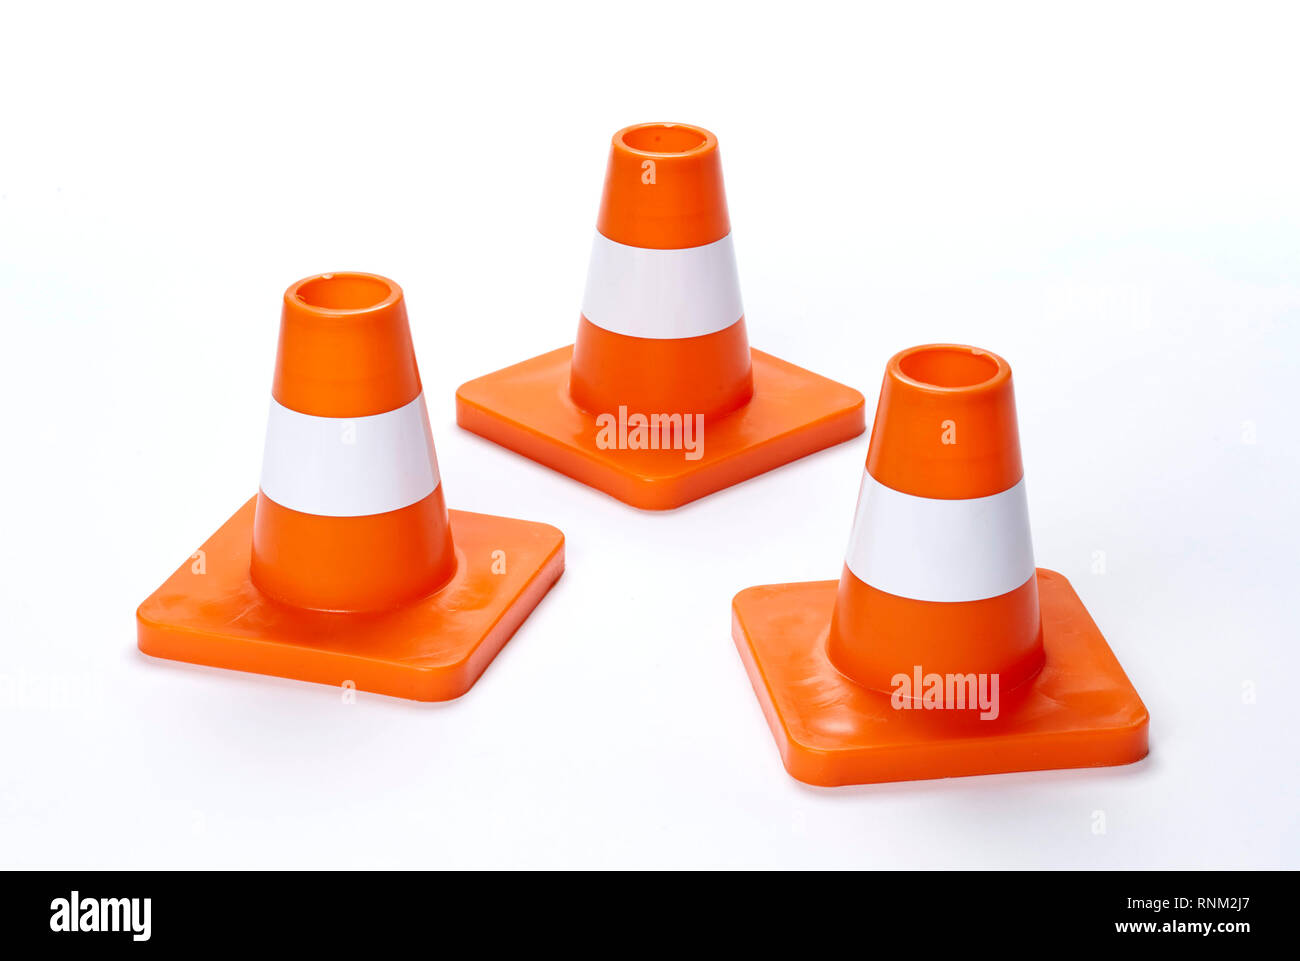 Three traffic cones. Studio picture against a white background - Stock Image